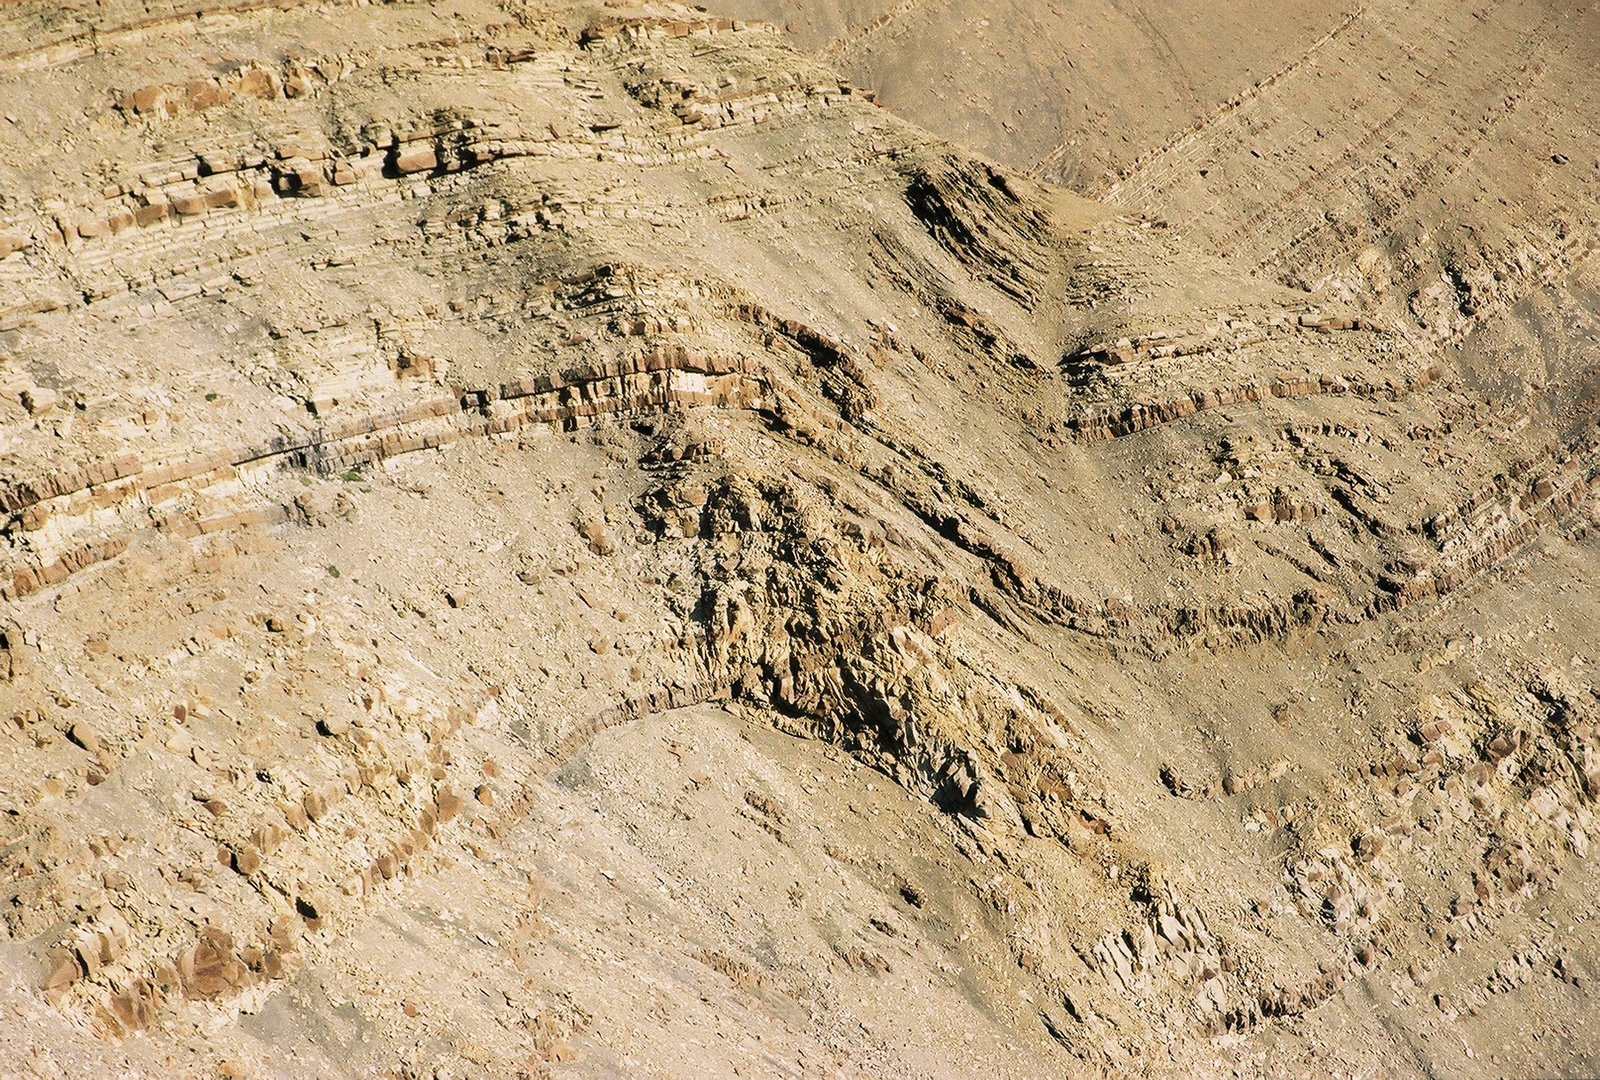 Cretaceous Tres Pasos Formation cross cut by Miocene intrusions (©2009 clasticdetritus.com)